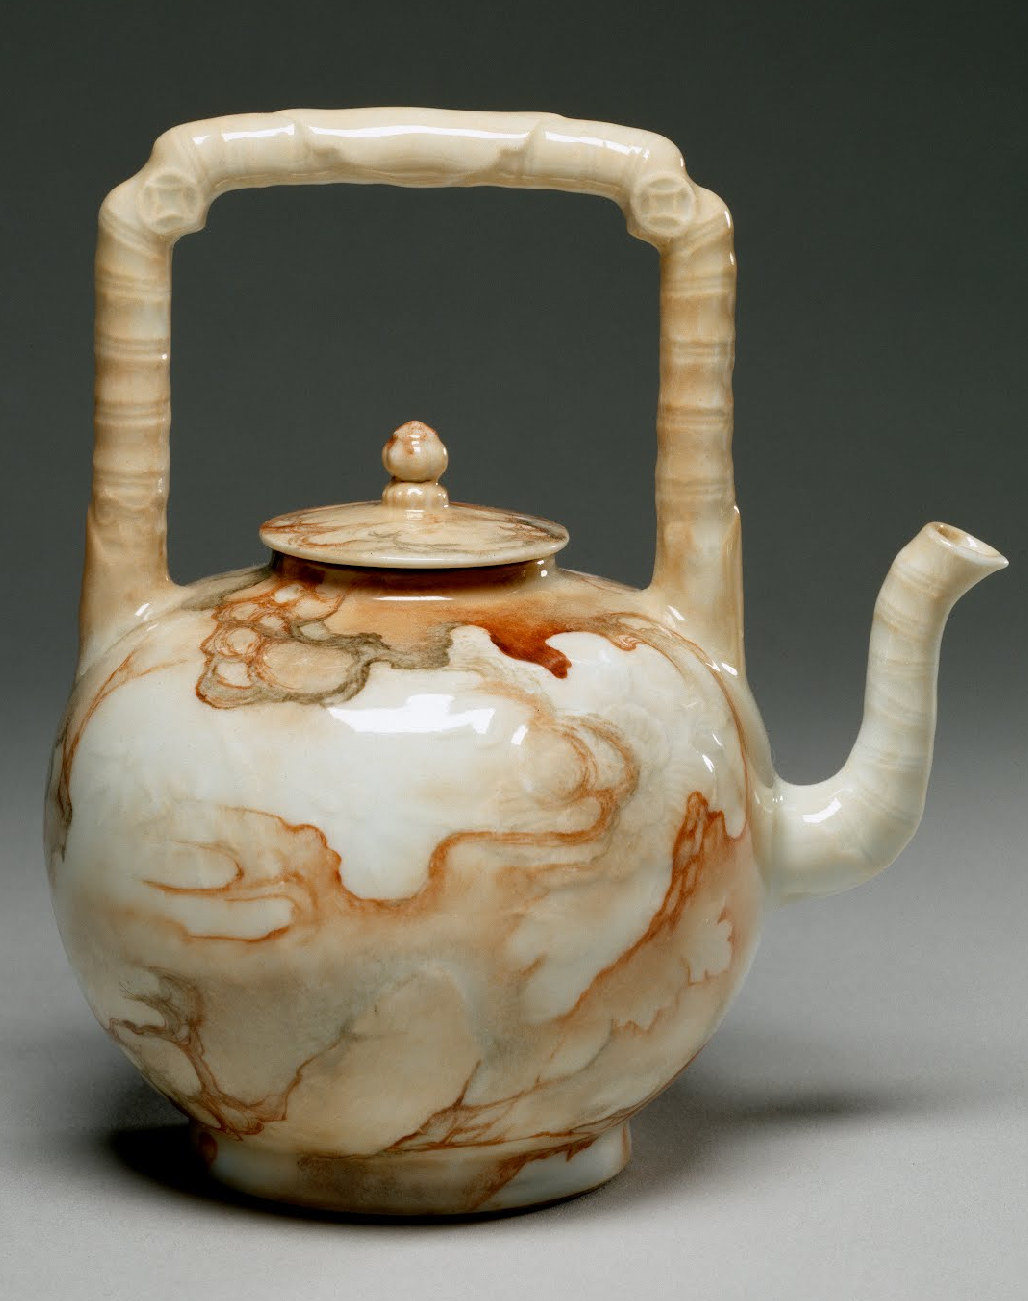 Teapot, Chinese 1736-1795  The body of the vessel was made in a mold that formed chrysanthemums in low relief; then it was decorated with a marblized pattern within which there is actually a landscape, with mountains, trees, and mist. Here a landscape lies within a teapot painted to look like marble.  The Walters Art Museum